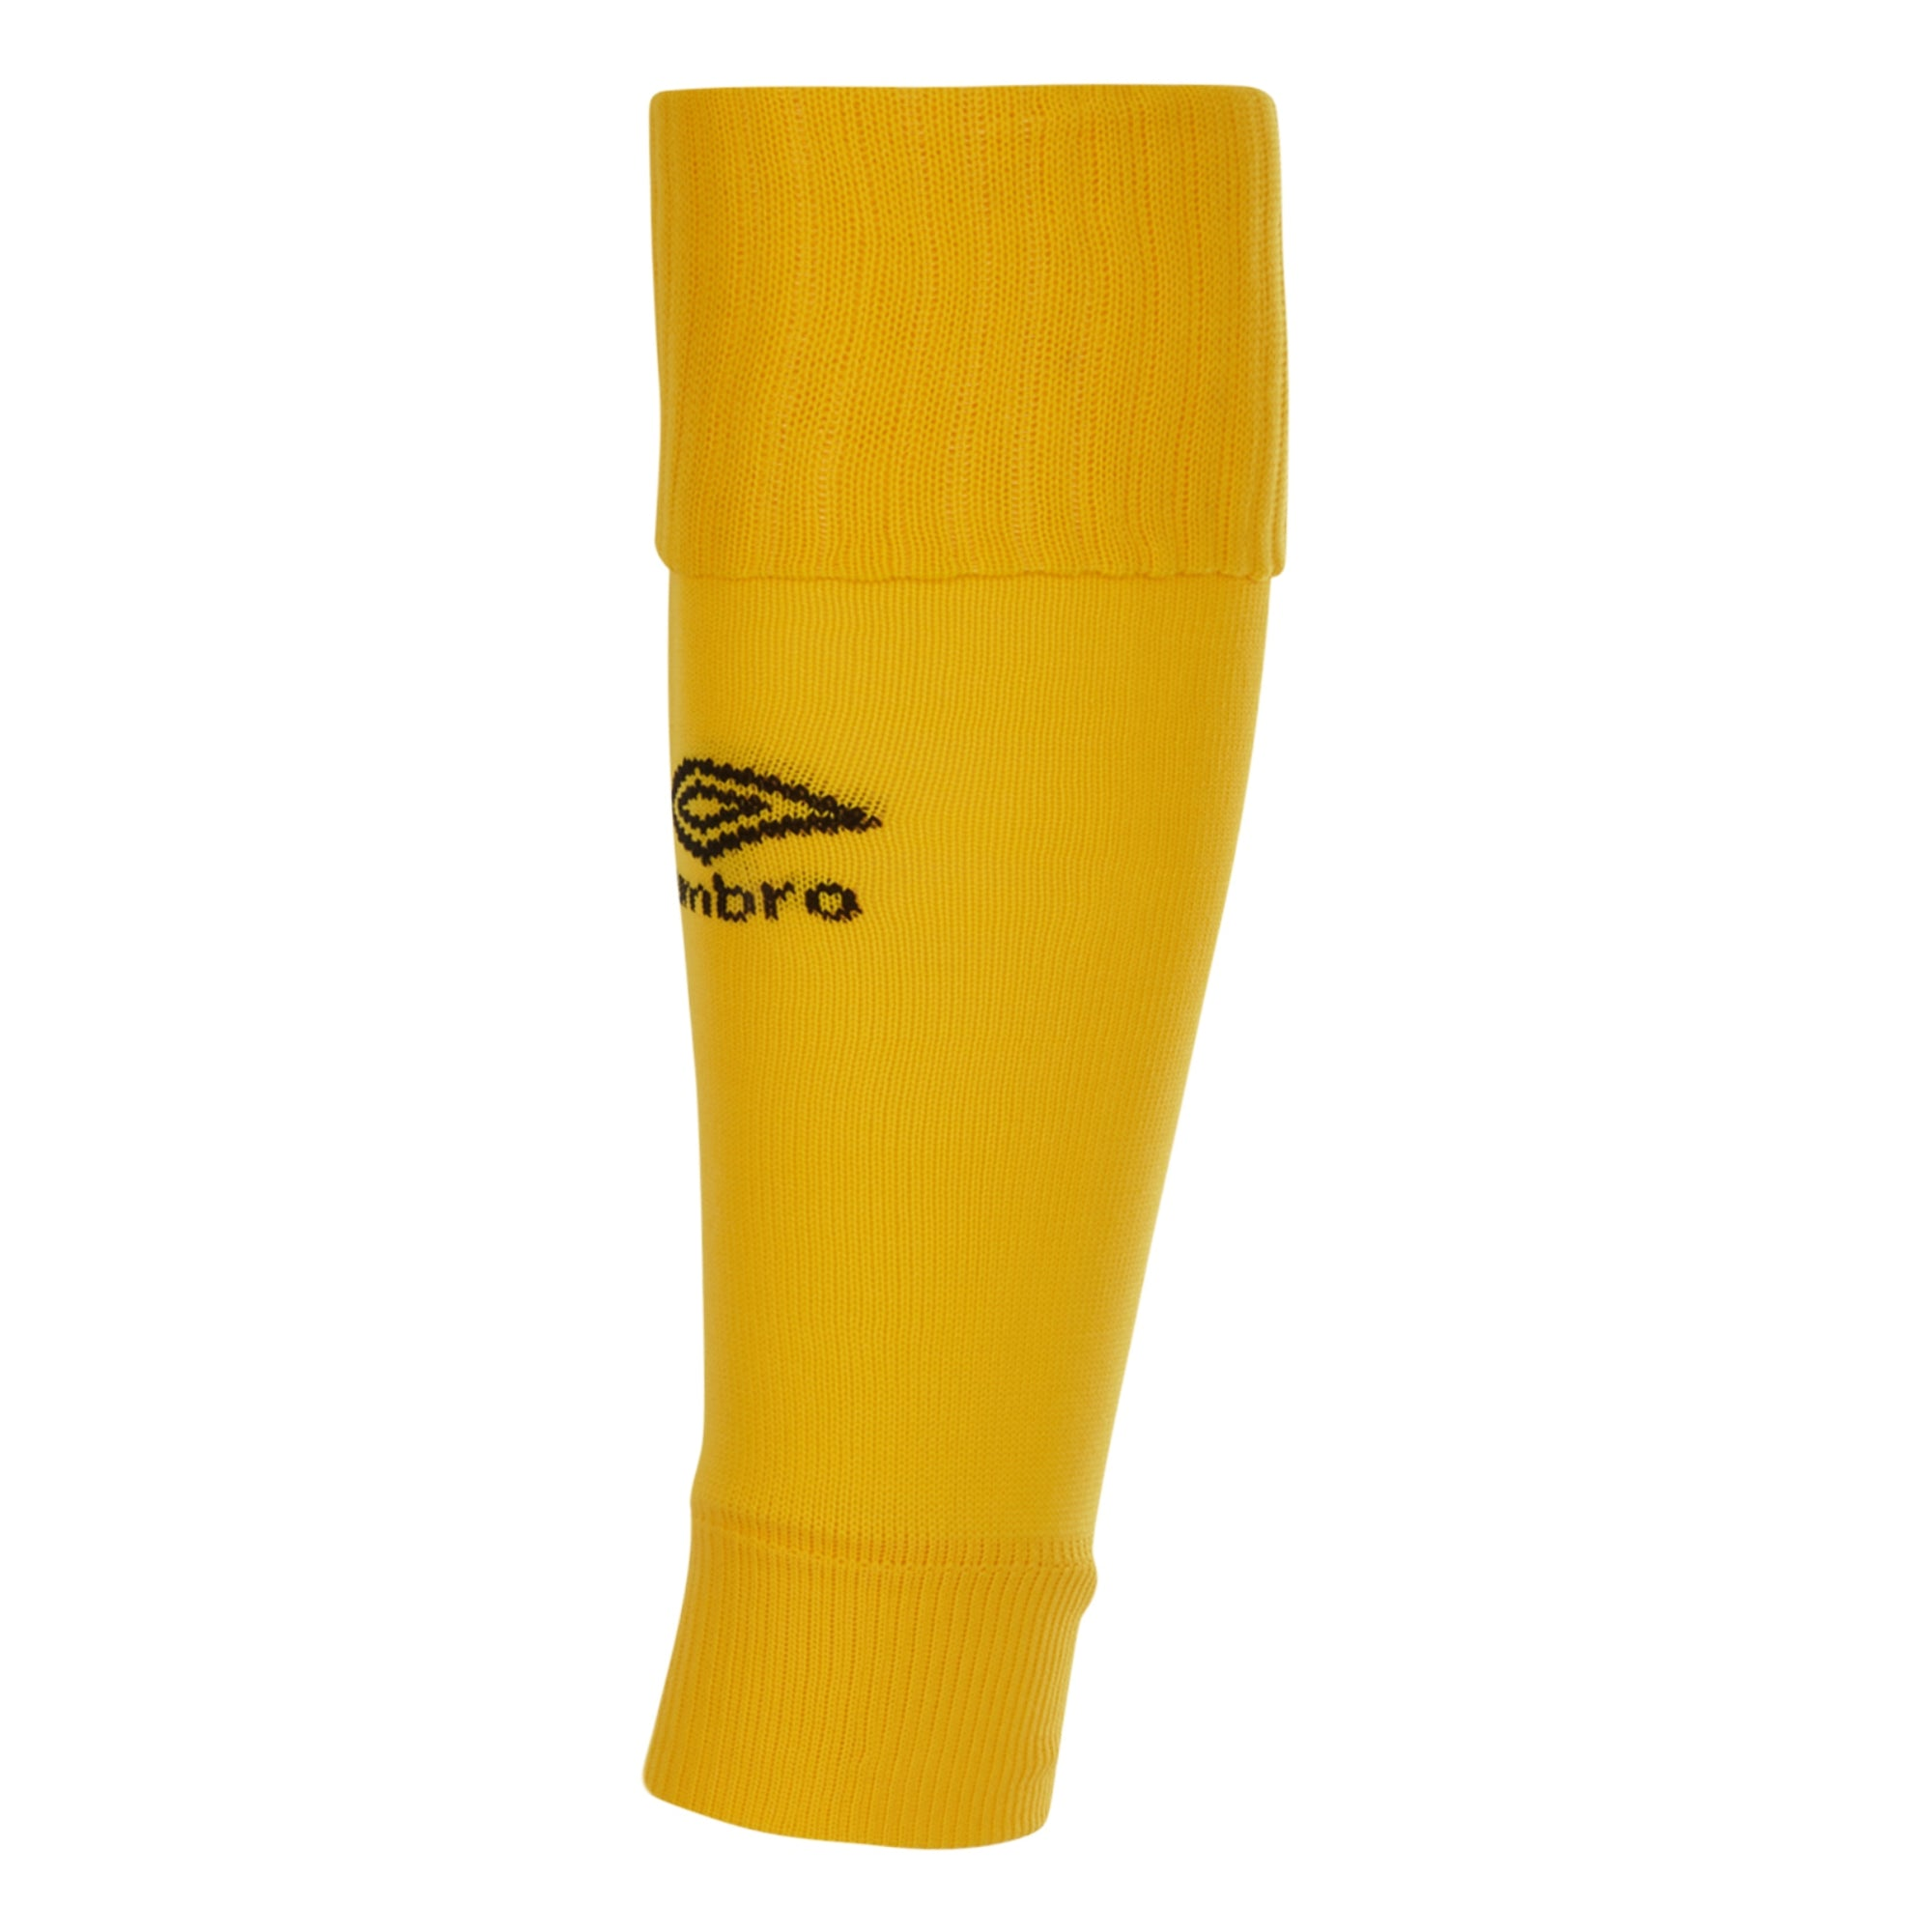 Umbro Sock Leg - Yellow